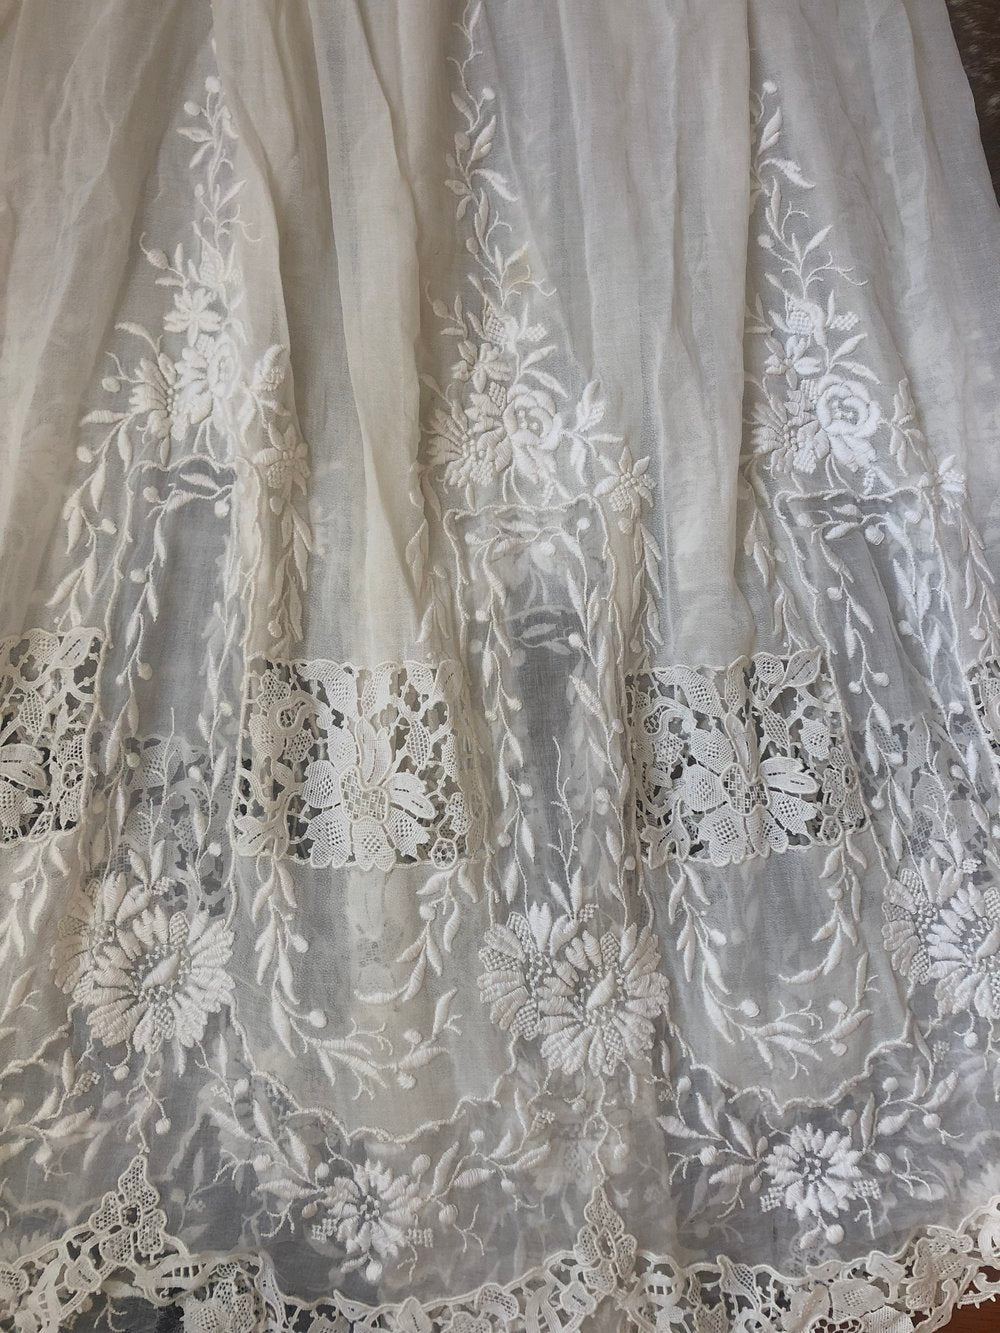 1900s silk wedding skirt